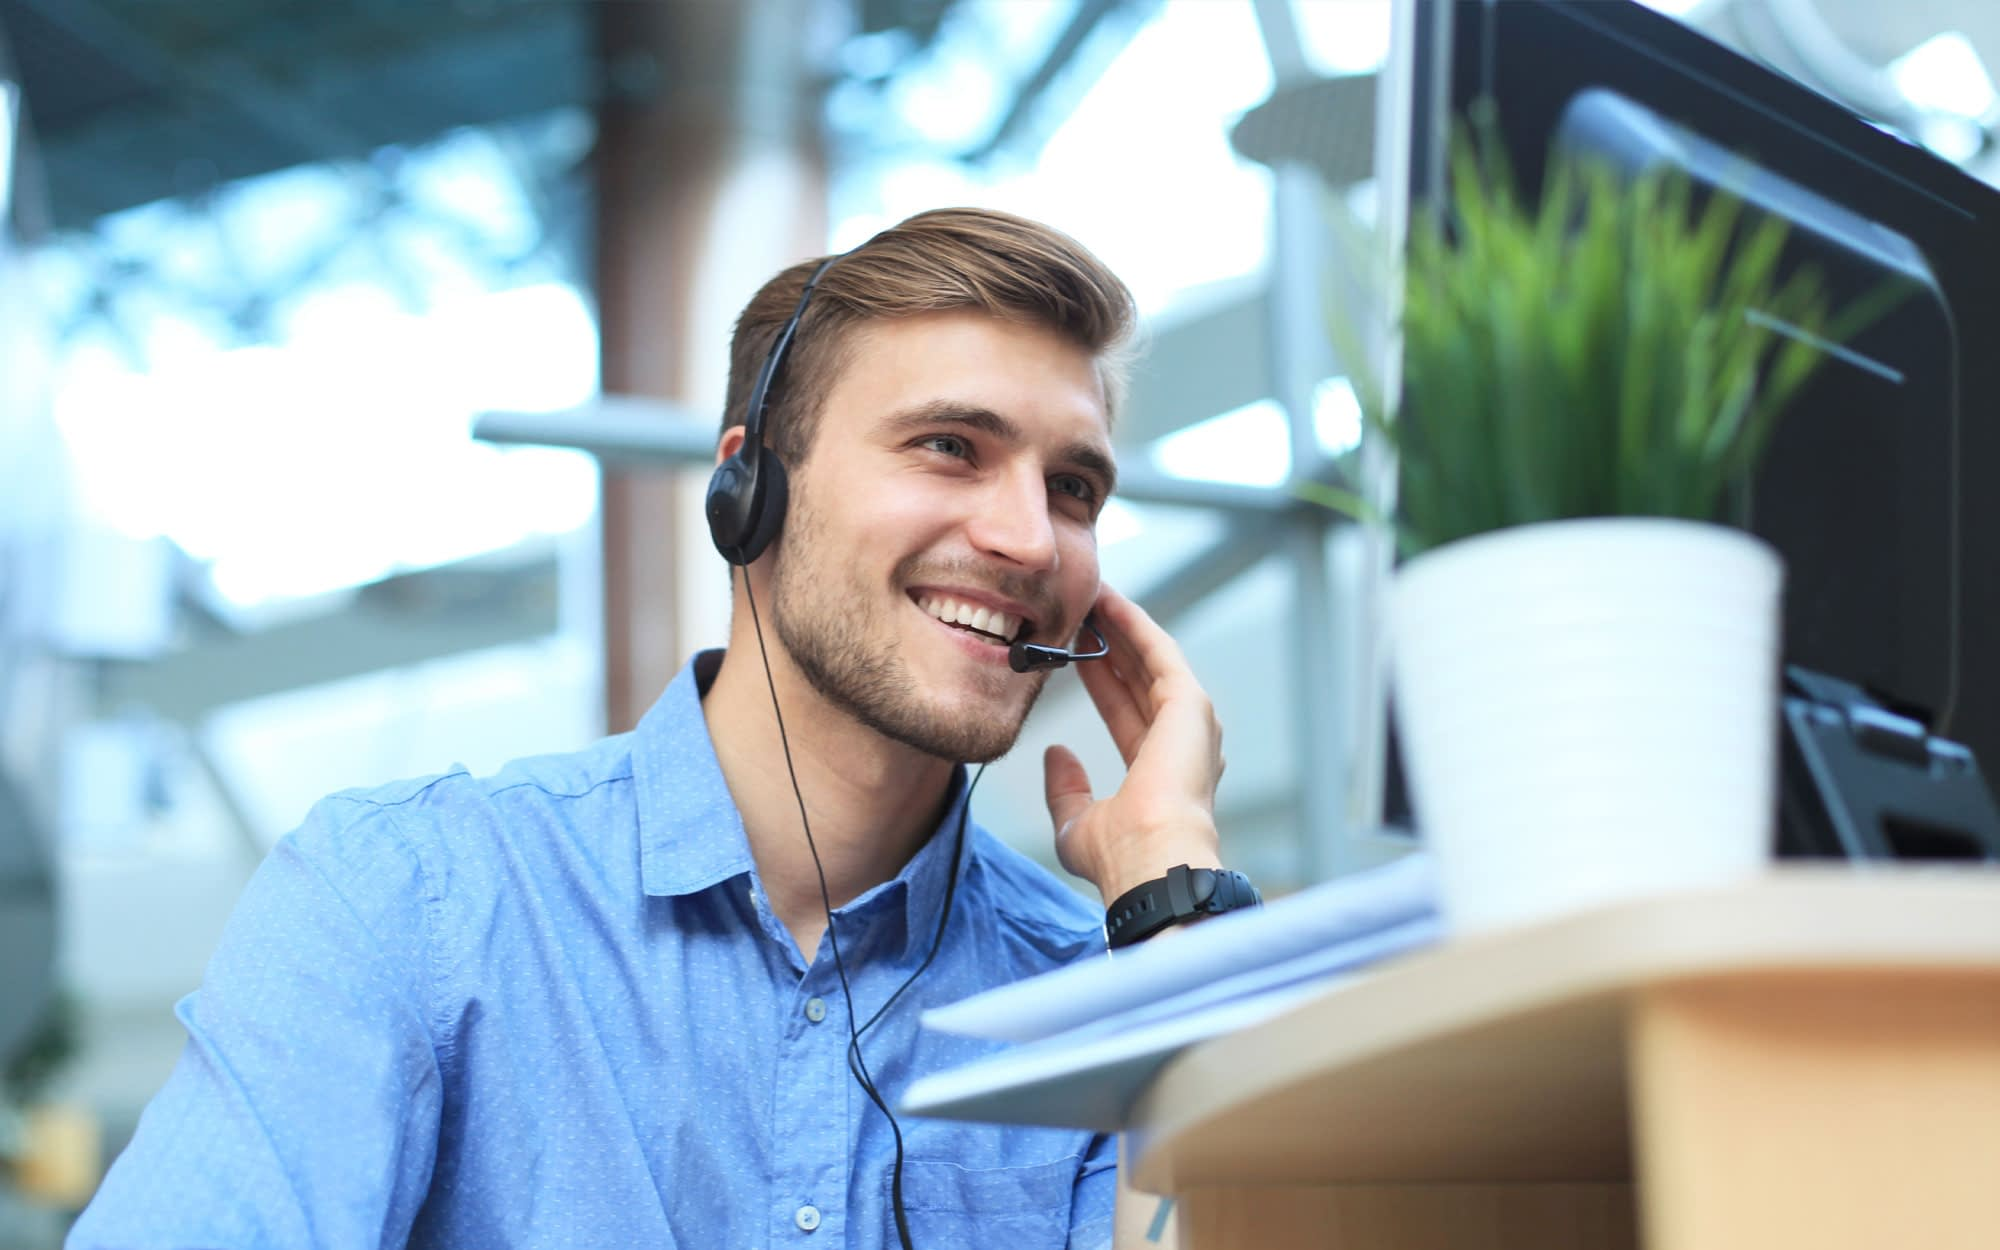 Contact Center Automation Tools